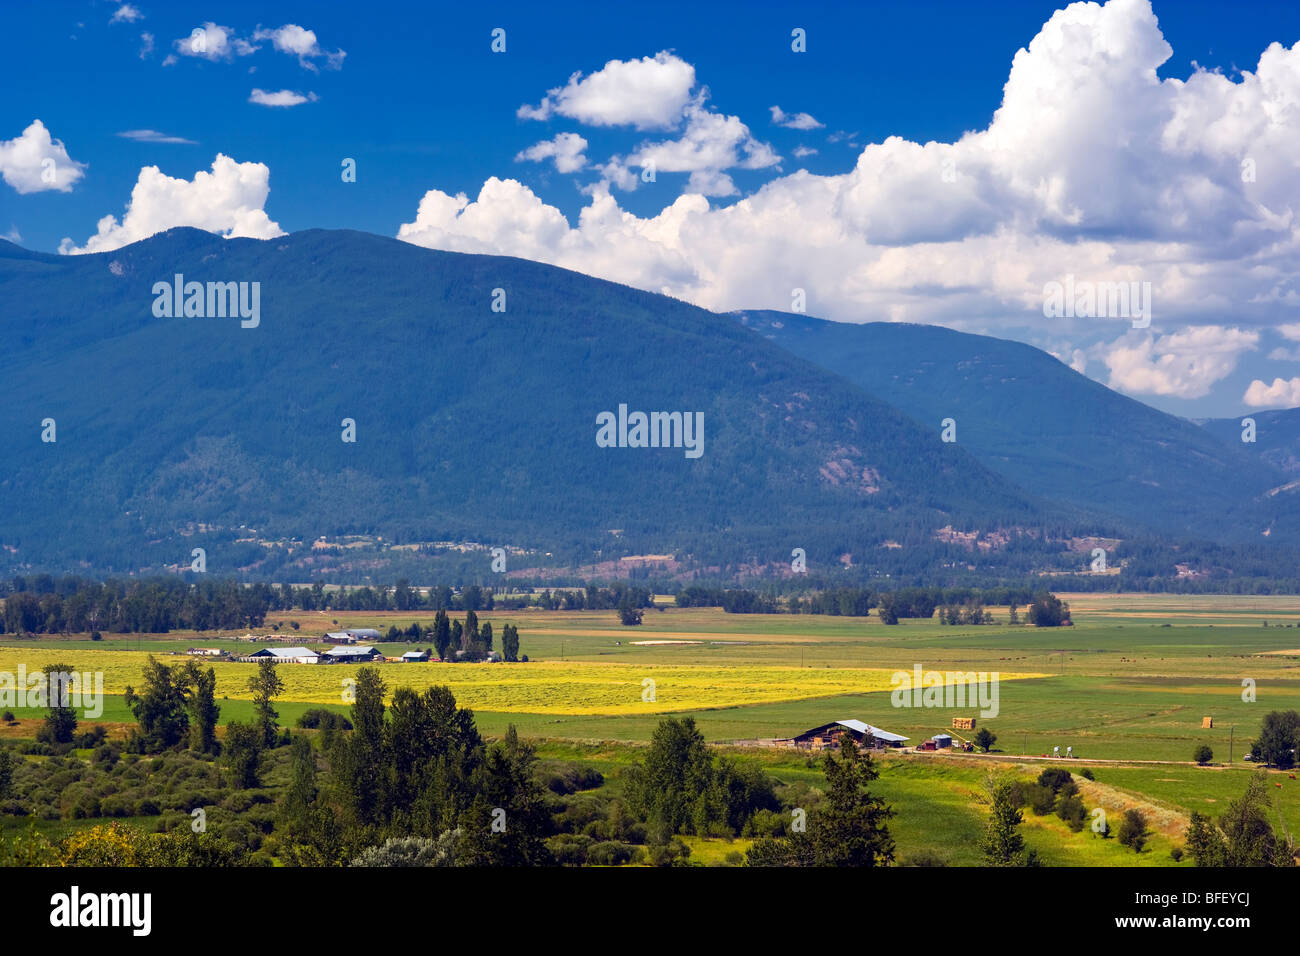 Farms in fertile Creston Valley, British Columbia, Canada, agriculture - Stock Image